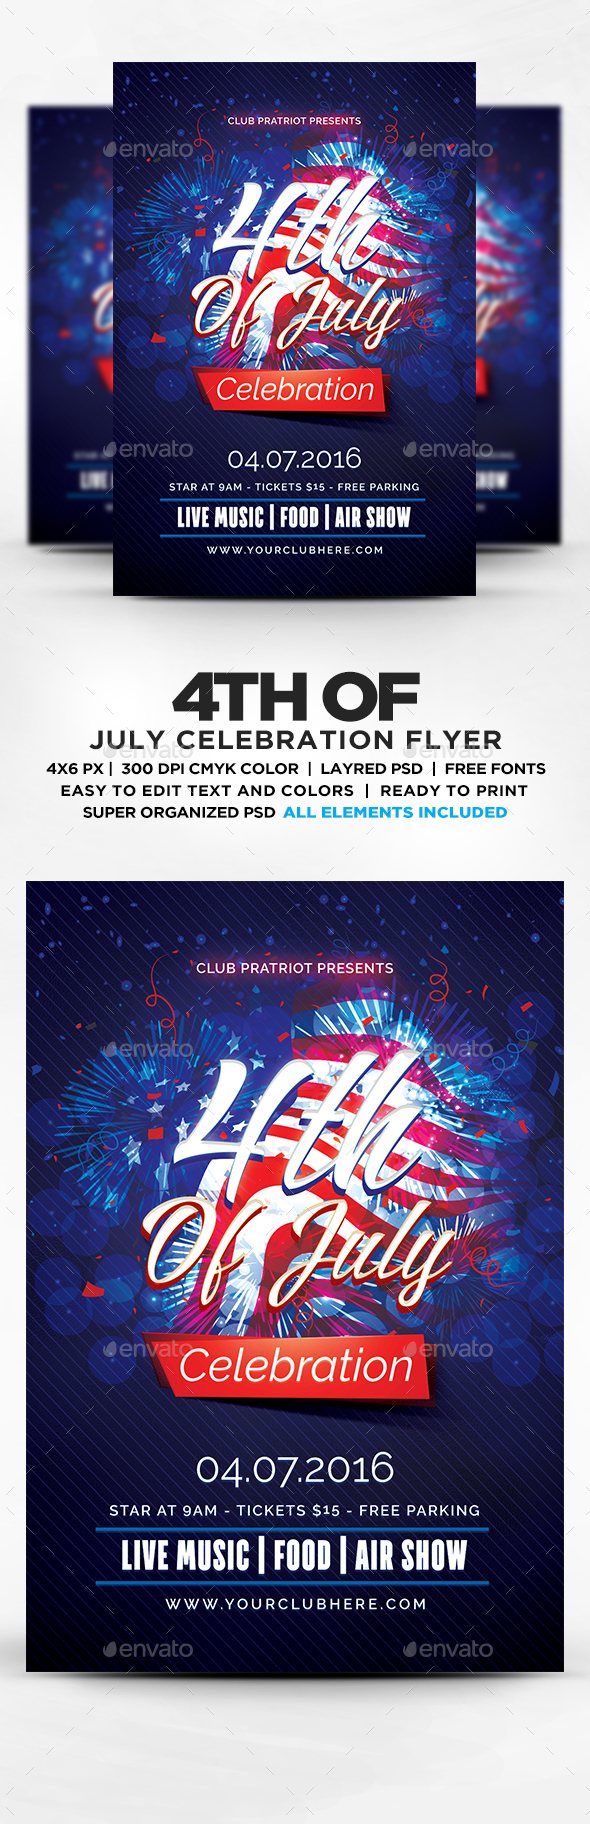 4th of july celebration flyer template psd by designblend for 4th of july menu template